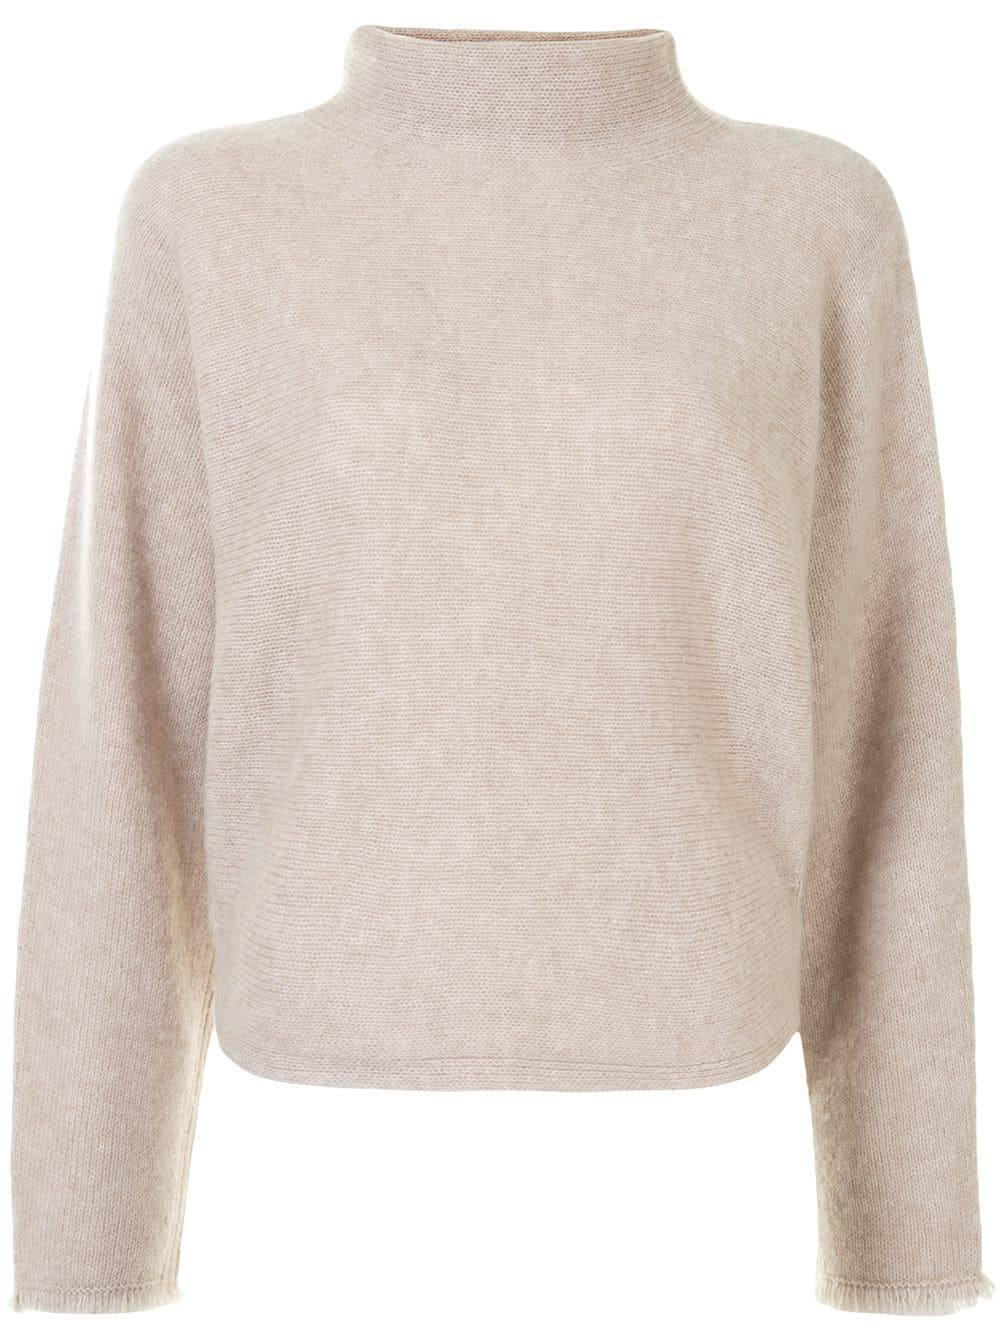 Dolman Sleeve Turtleneck Sweater